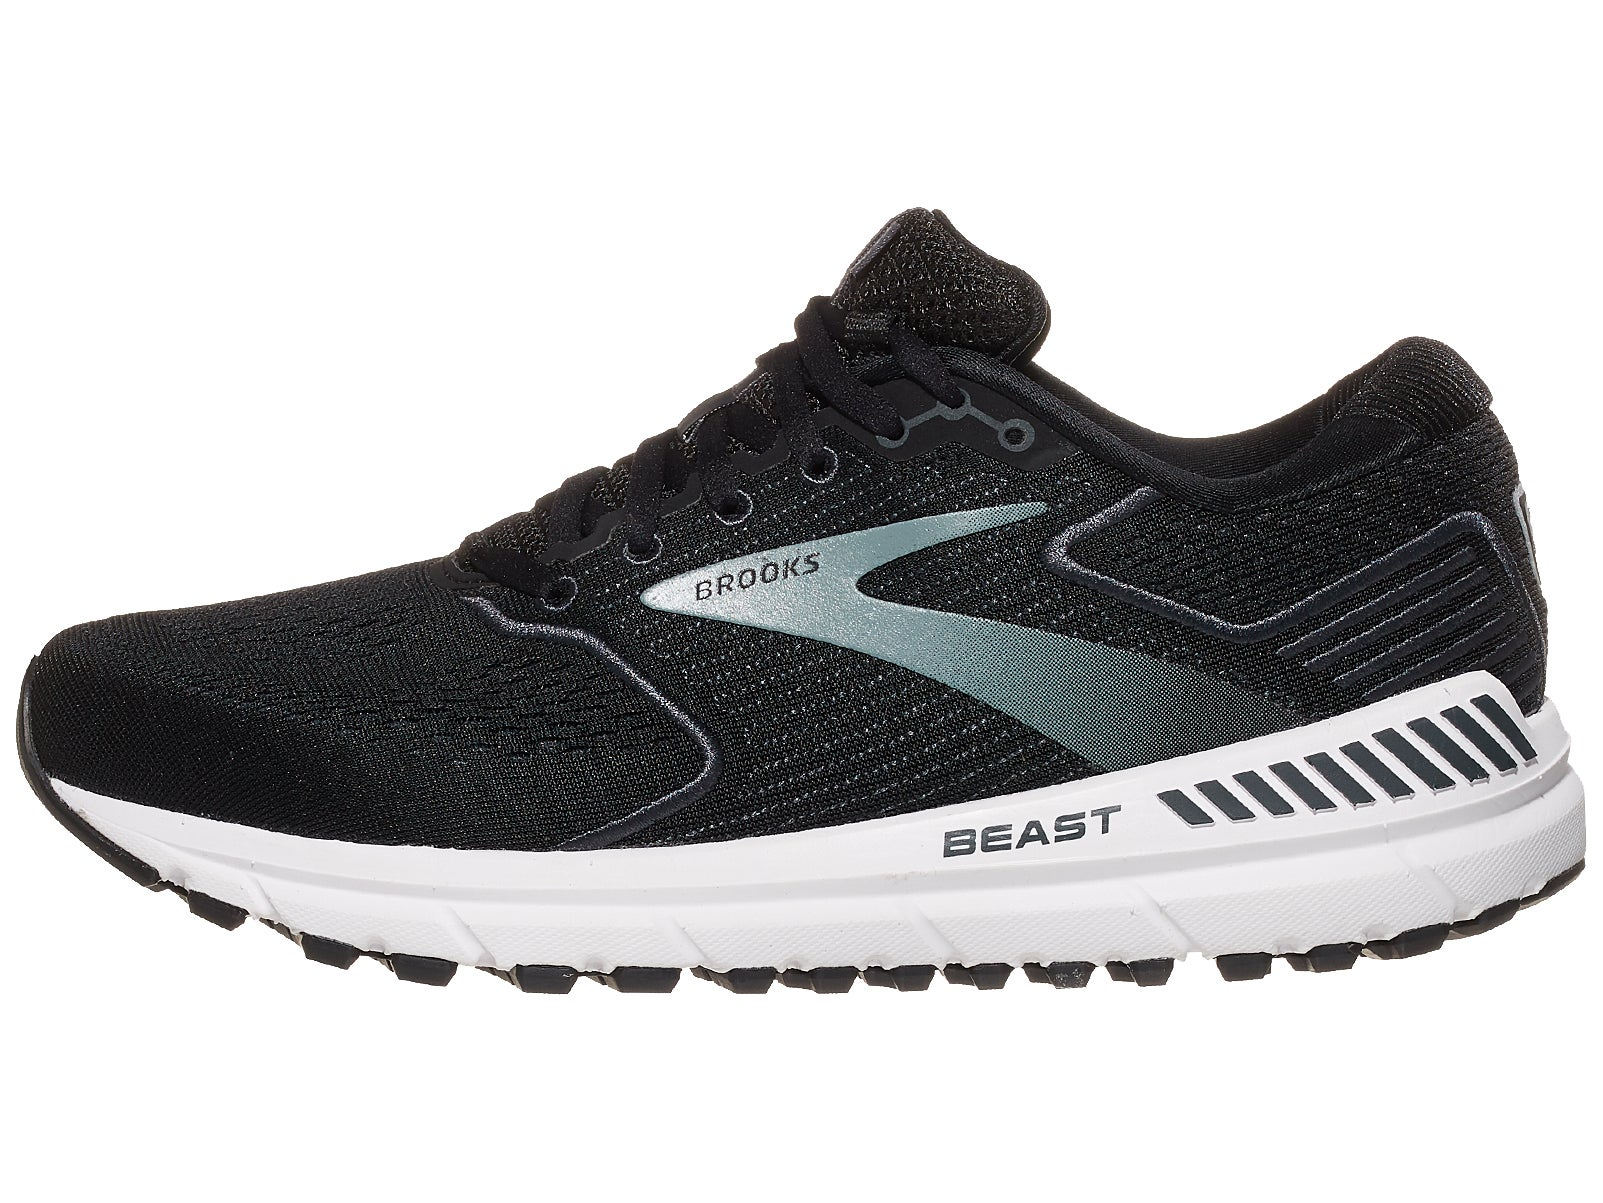 Men's Beast '20 (051 - black/ebony/grey)